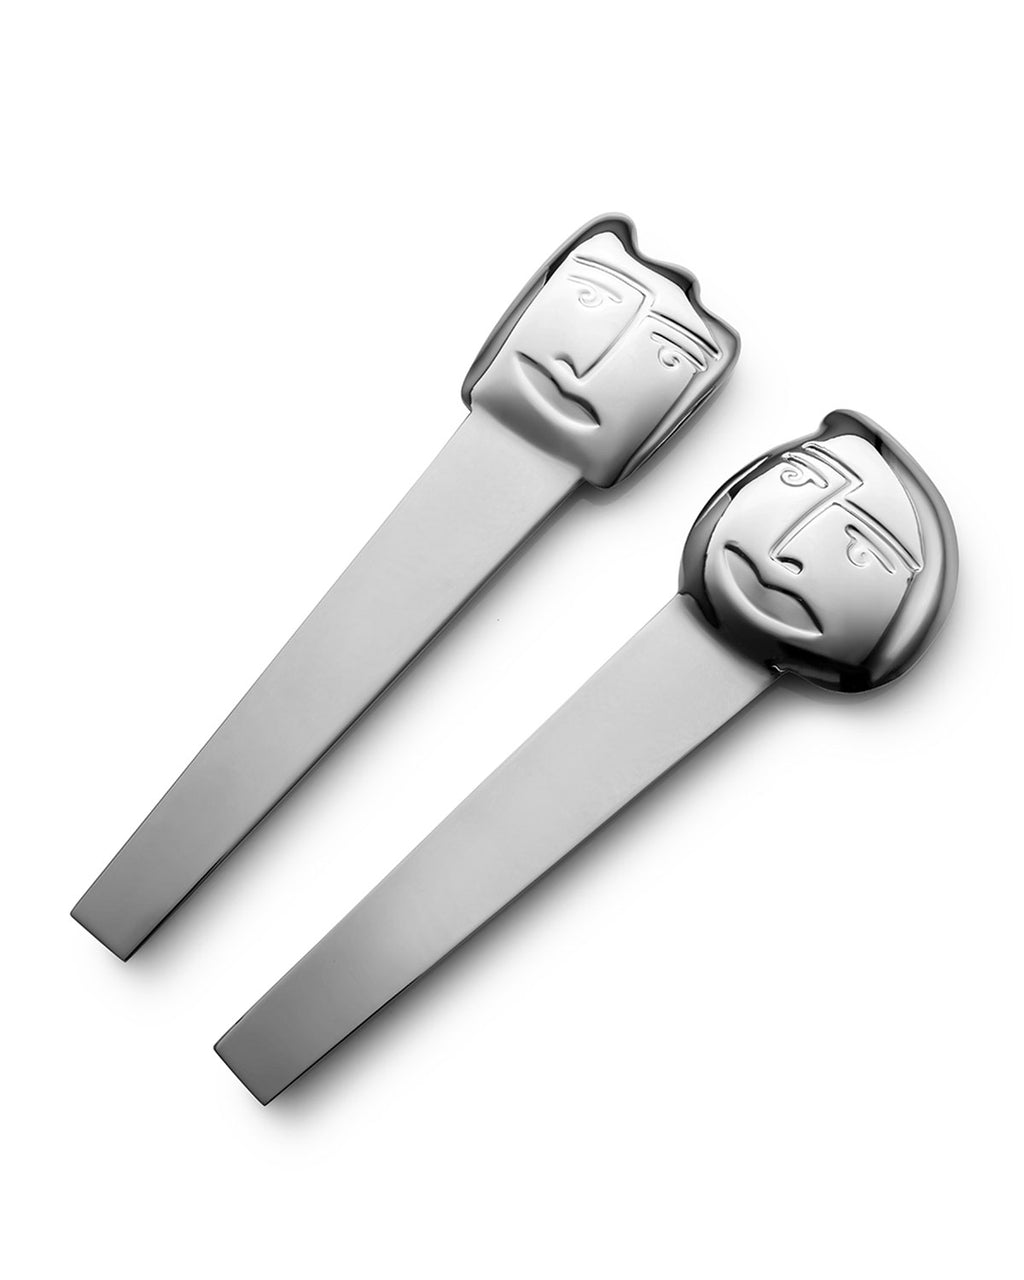 Carrol BoYes, Face Off salad server